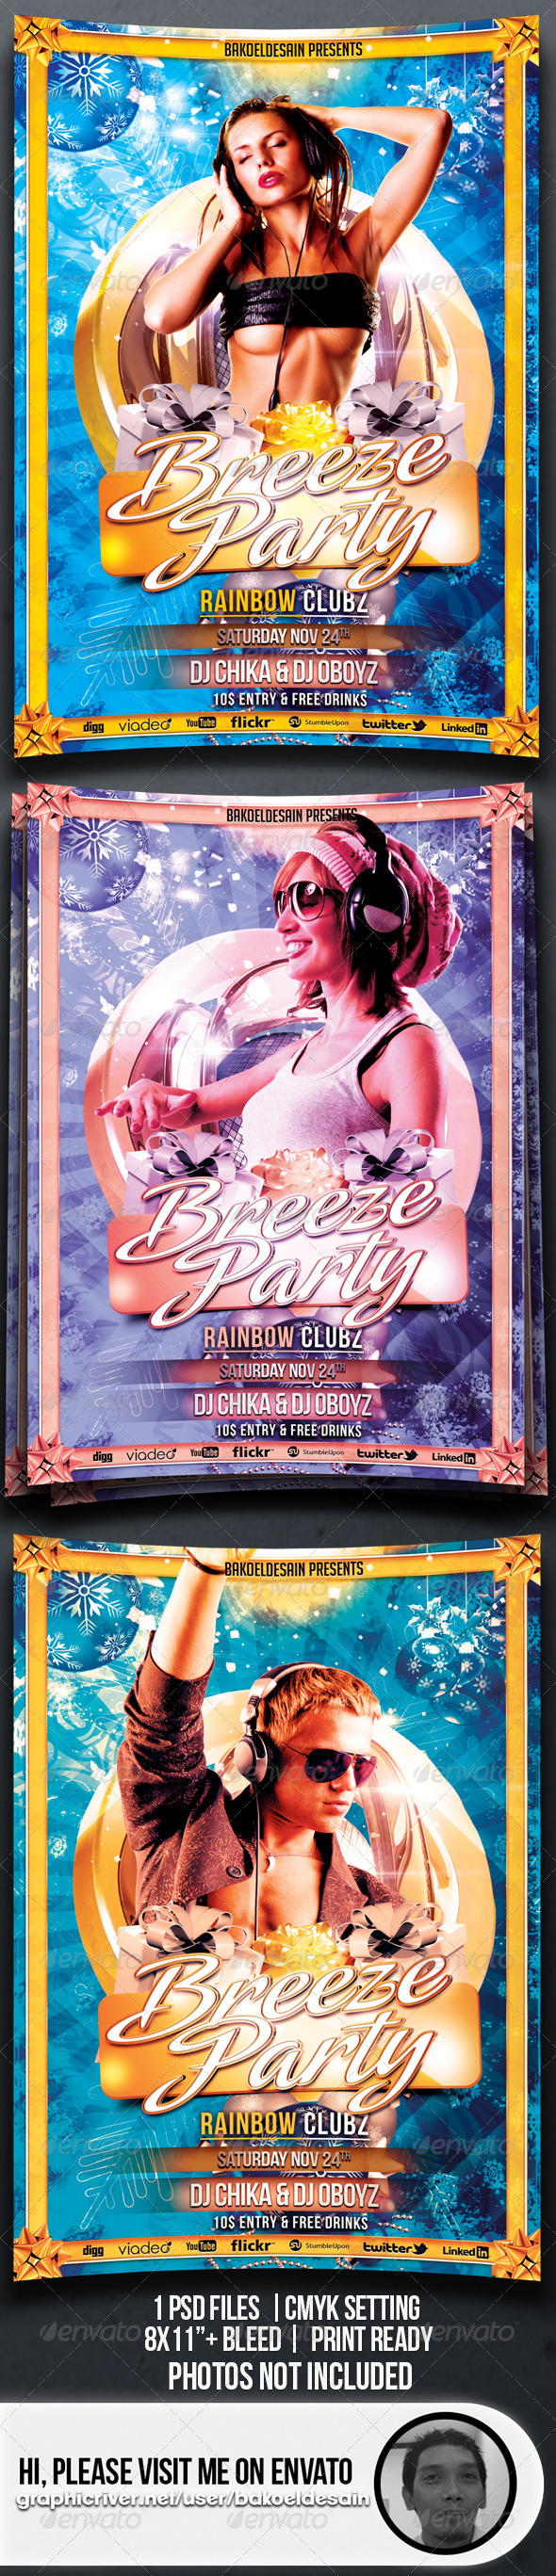 GraphicRiver Breeze Party Flyer 3544699